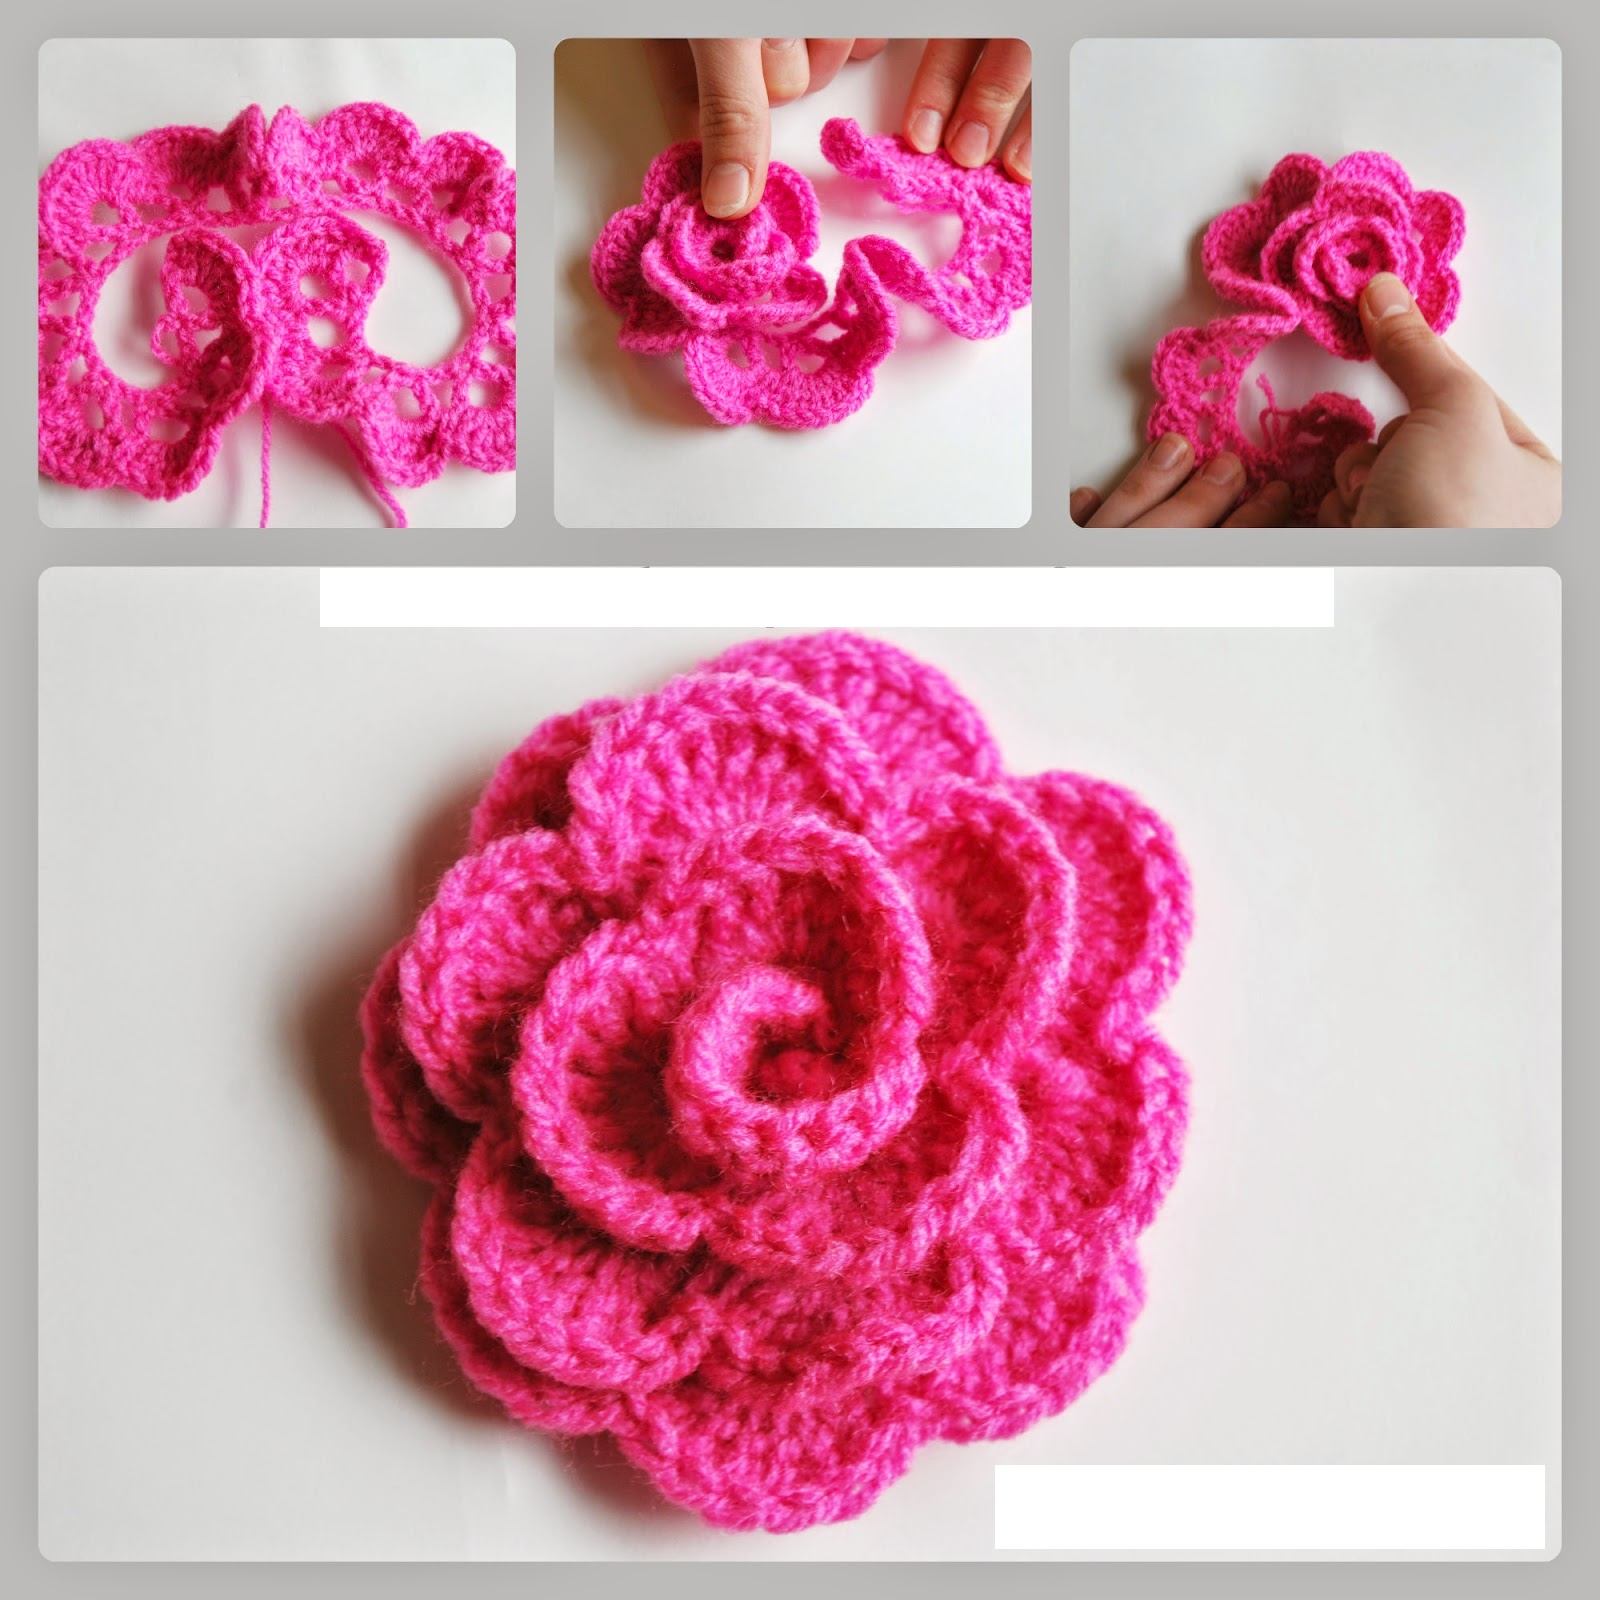 Small Rose Flower Crochet Pattern : Crochet a Rose Flower: 33 Inspiring Patterns ? Patterns Hub